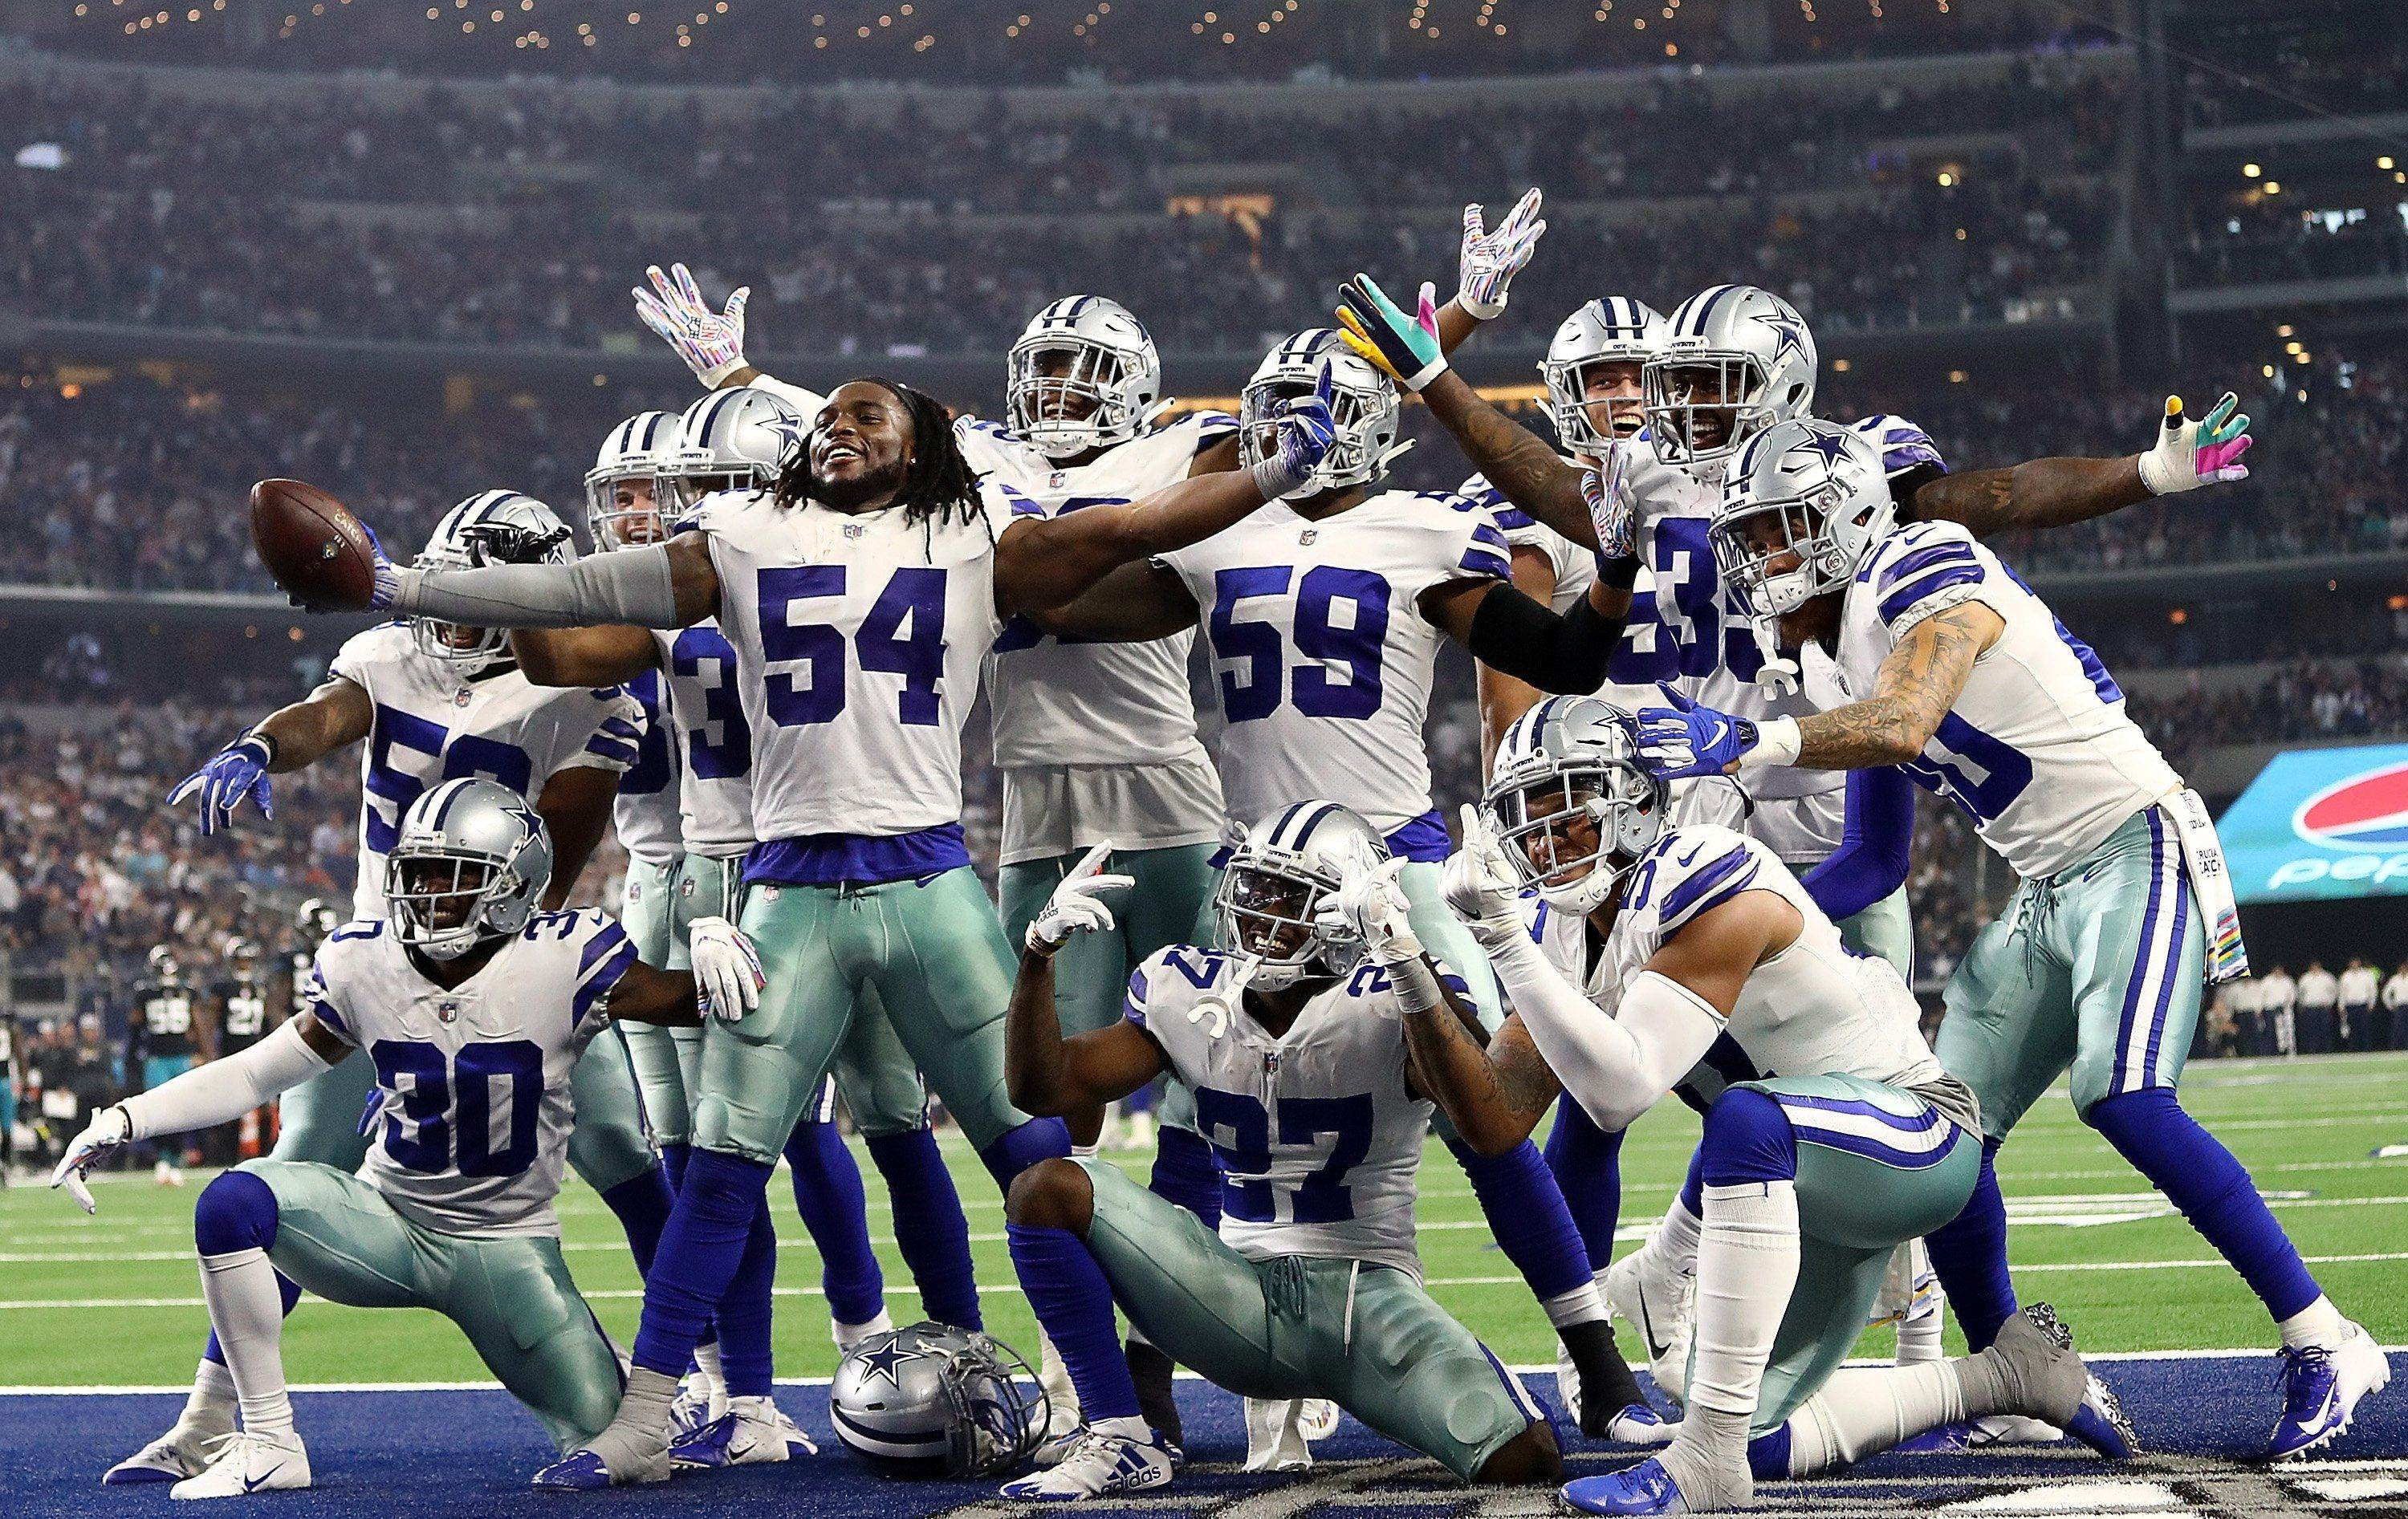 Cowboys Roster Looking Pretty Good For 2019